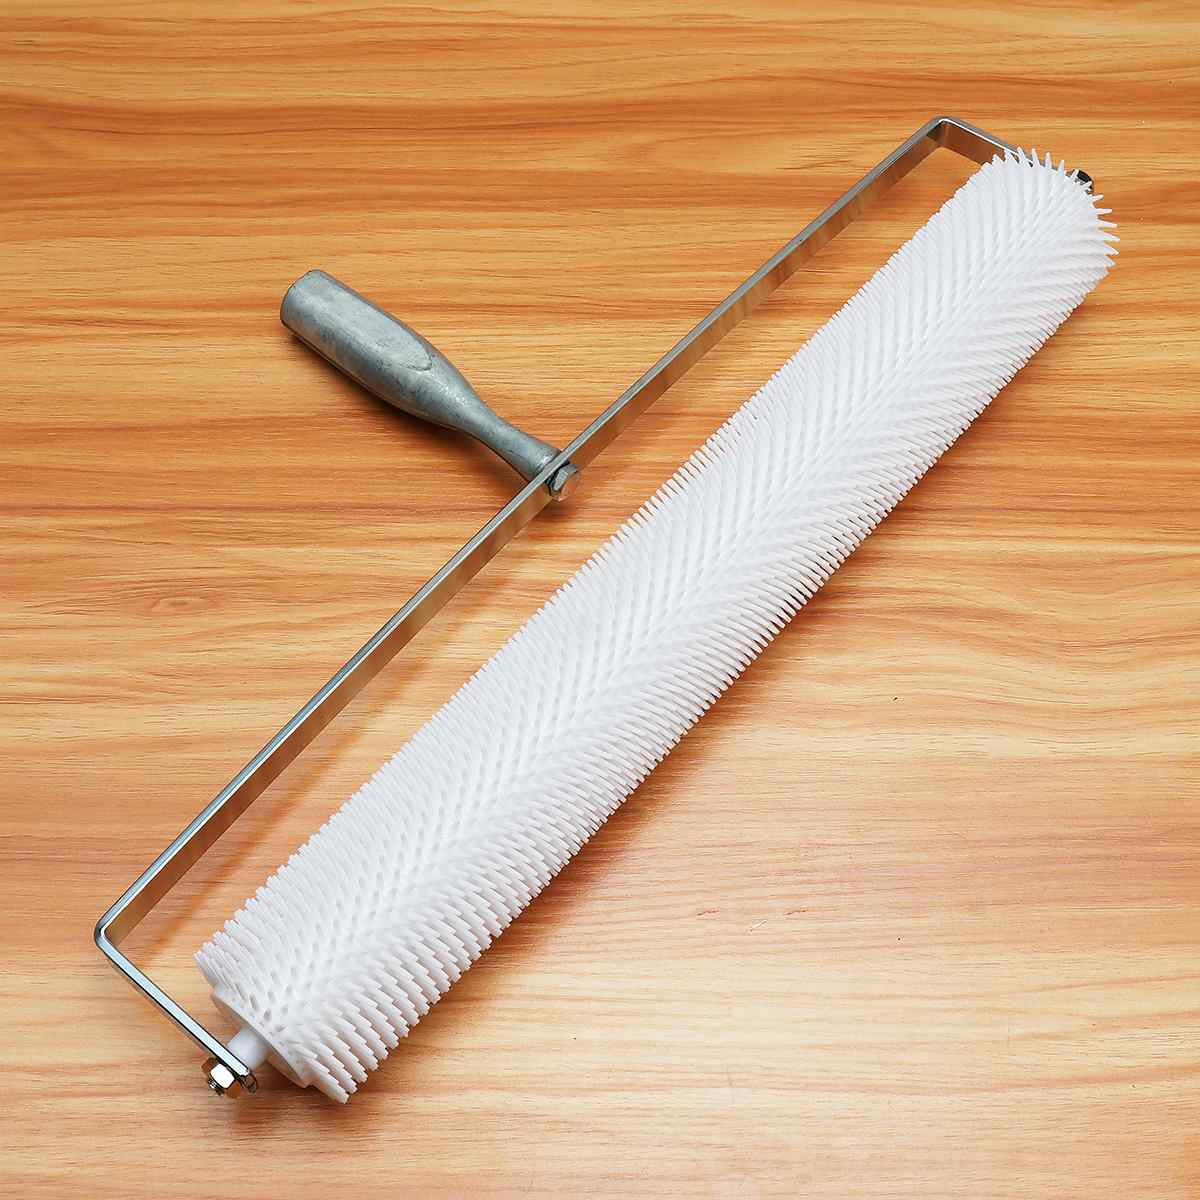 13mm Hand Tools DIY Floor Cement Self Levelling Home Tools Roller Defoaming Inch Accessories Aeration Spiked 20 Screed Roller